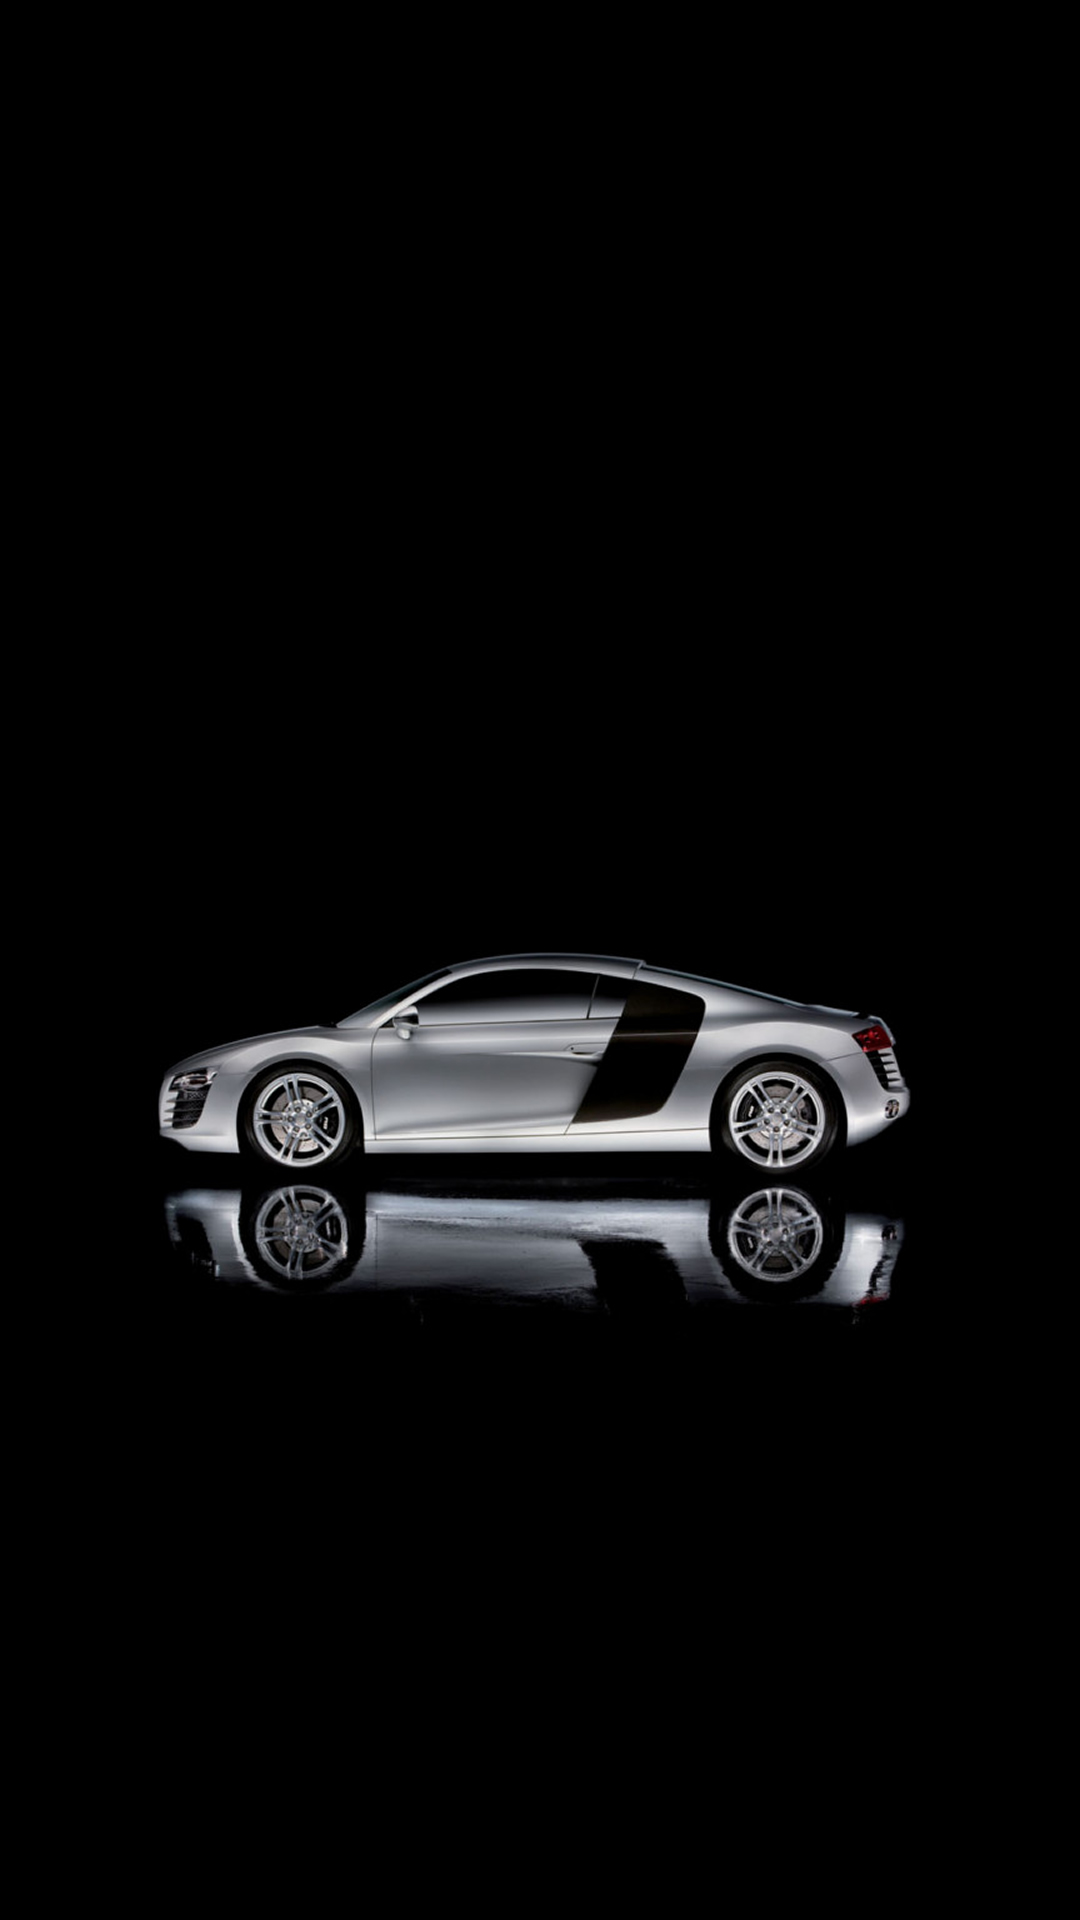 Wallpaper Wiki Free Audi Iphone Picture Pic Wpc003106 Wallpaper Wiki